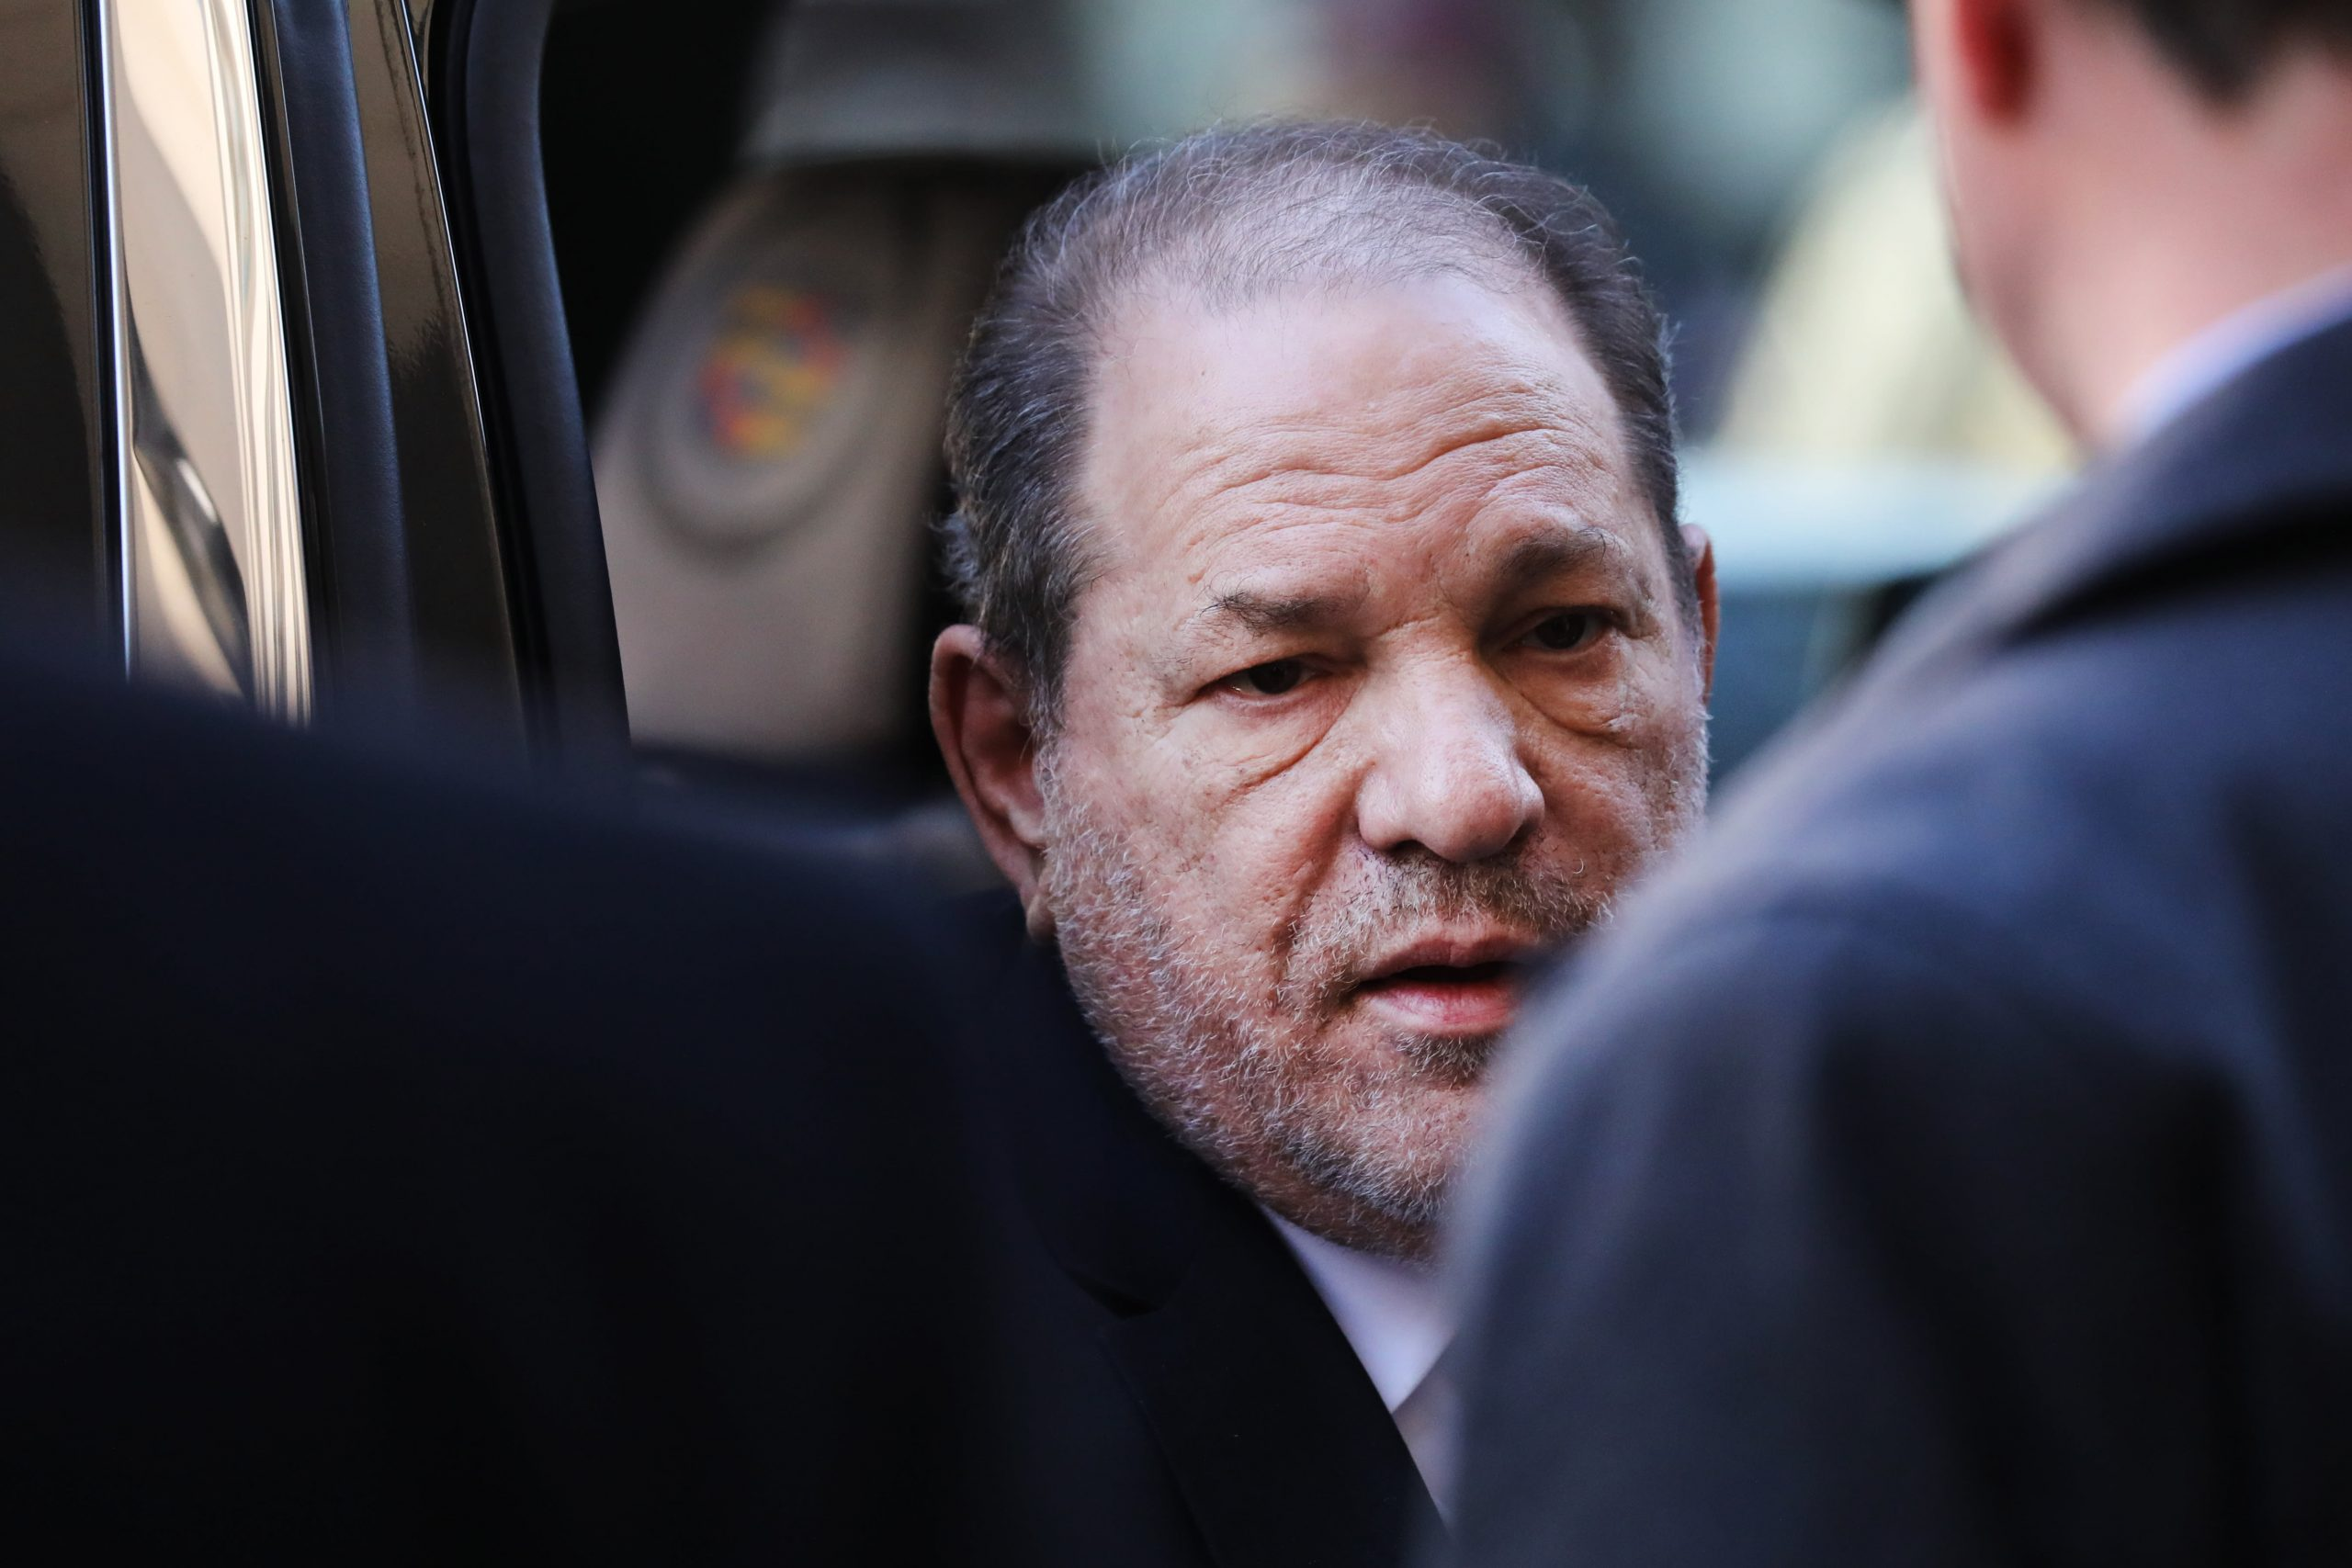 Harvey Weinstein sentenced to 23 years in prison for rape, sex assault